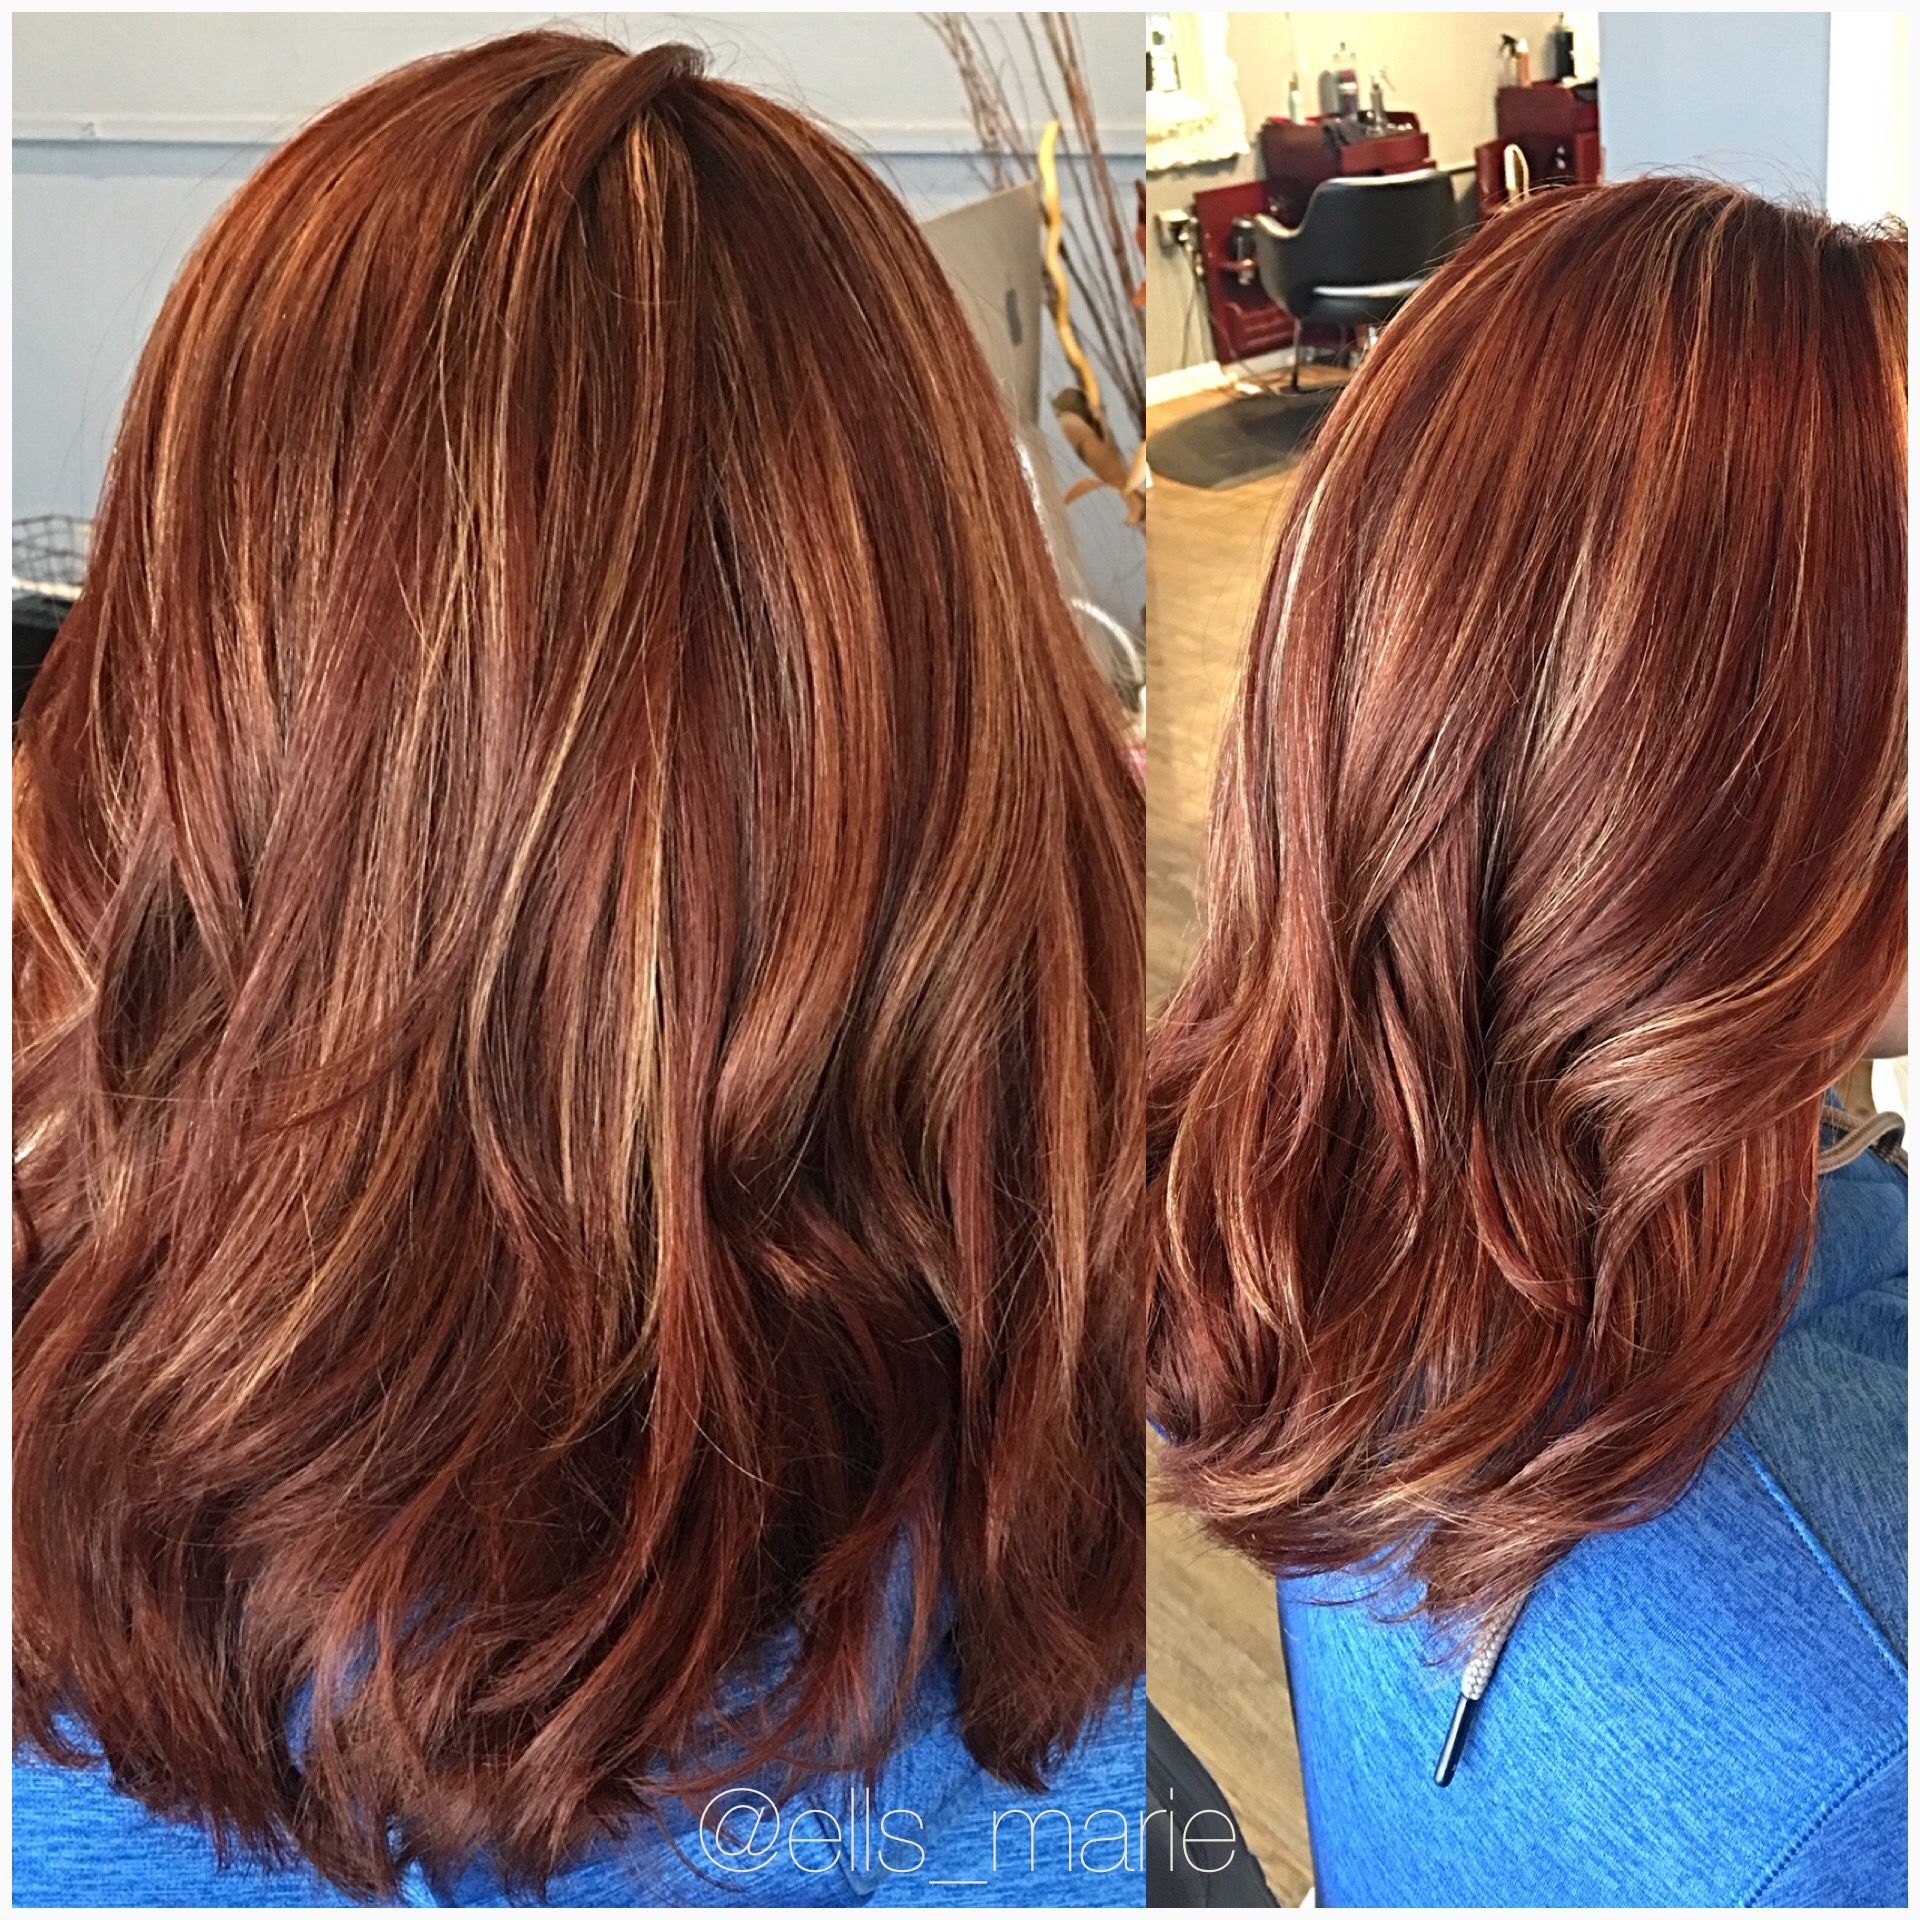 Highlights Blond Red Copper Blonde Highlights Hair Nutrients Pinte